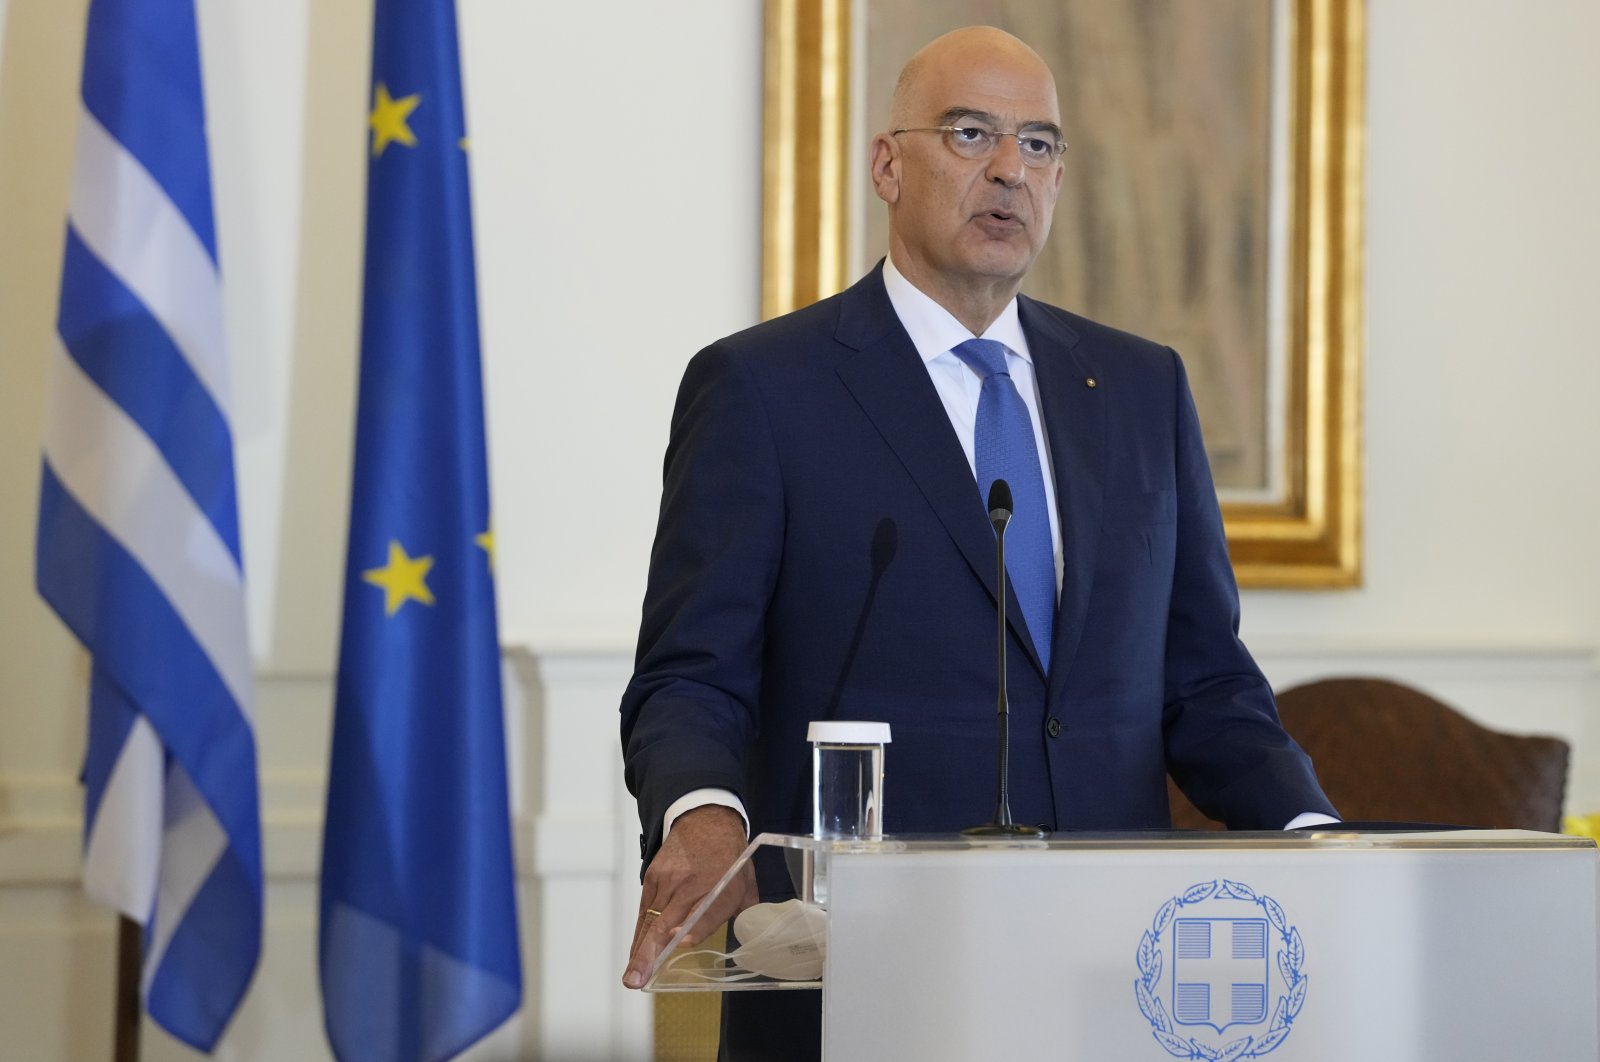 Greek Foreign Minister Nikos Dendias speaks to the media during a press conference after a meeting with his Turkish counterpart Mevlüt Çavuşoğlu in Athens, Greece, Monday, May 31, 2021. (AP Photo)